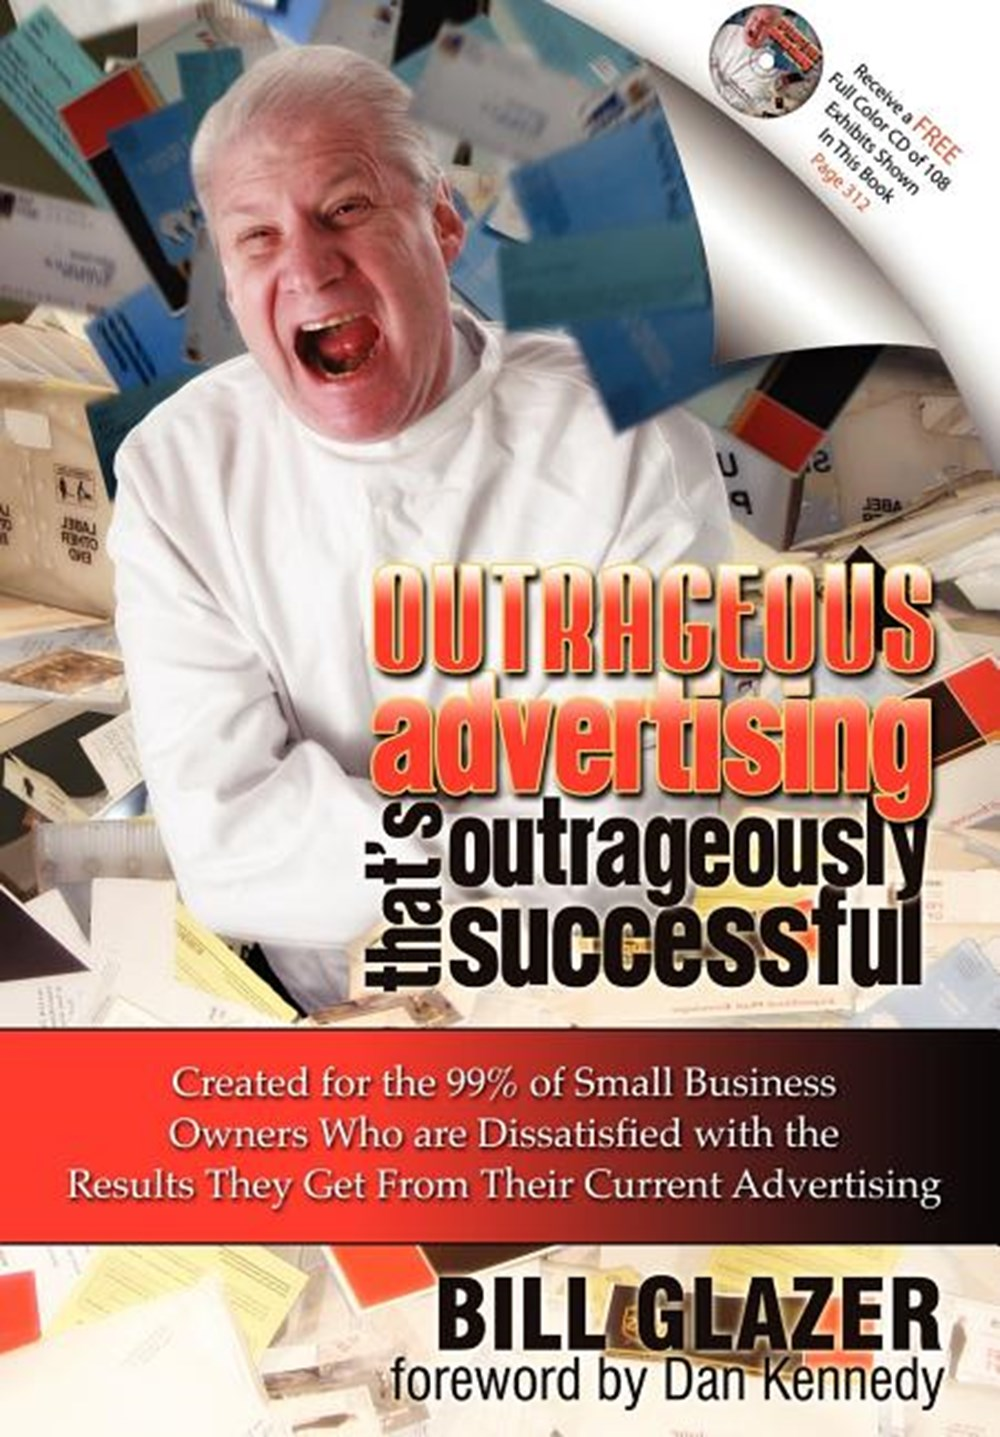 Outrageous Advertising That's Outrageously Successful Created for the 99% of Small Business Owners W